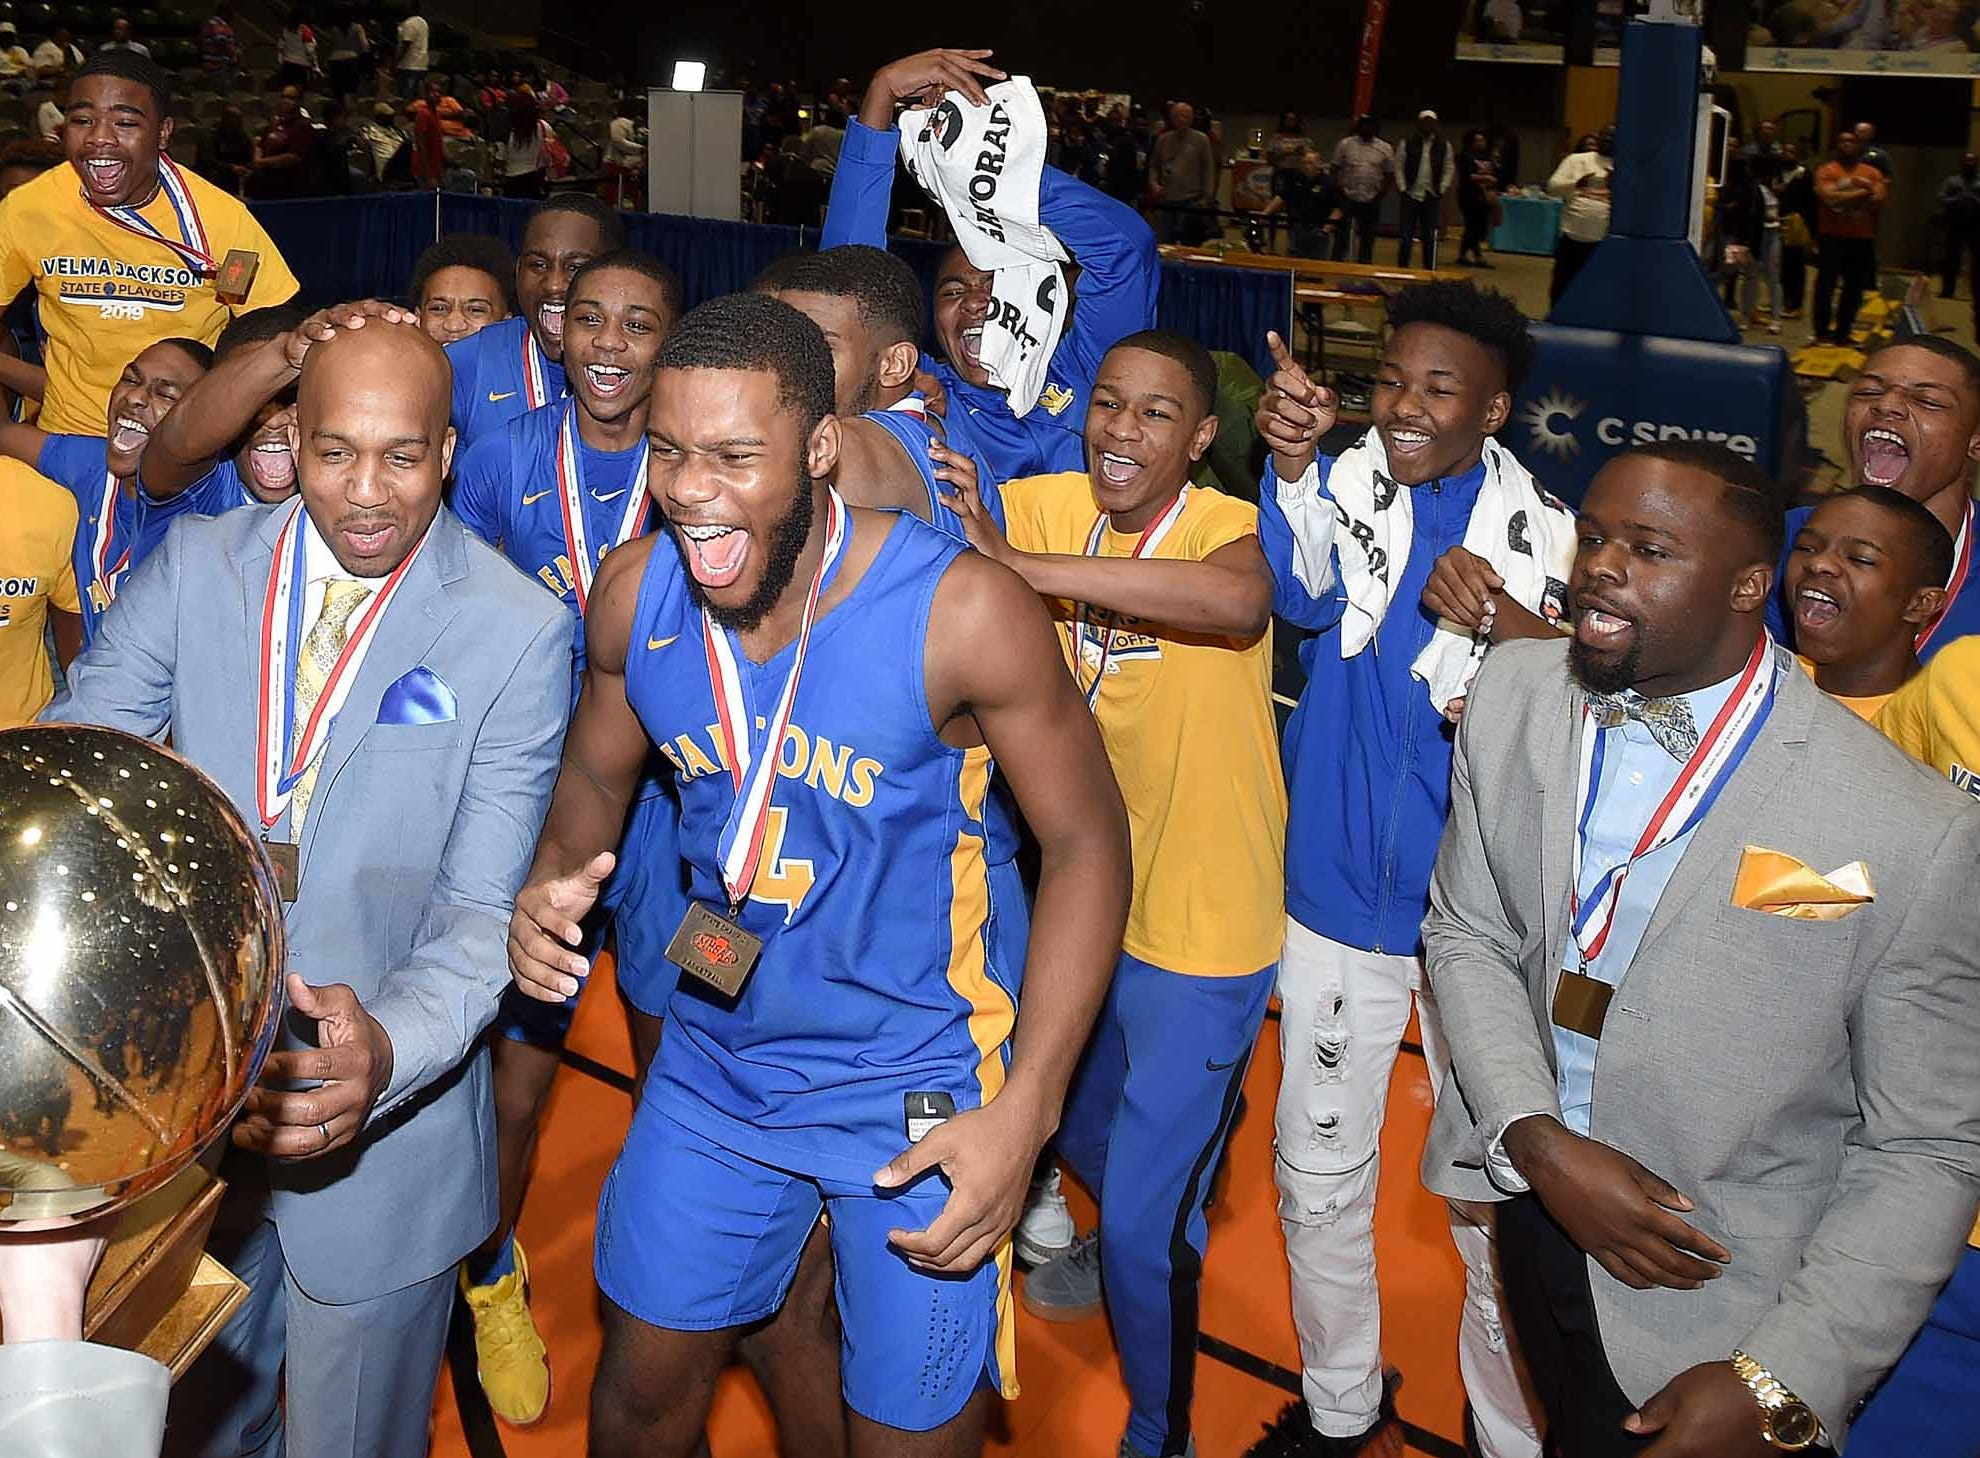 The Velma Jackson Falcons receive the Class 3A trophy after beating Holly Springs in the finals of the MHSAA C Spire State Basketball Championships at the Mississippi Coliseum in Jackson, Miss., on Saturday, March 9, 2019.